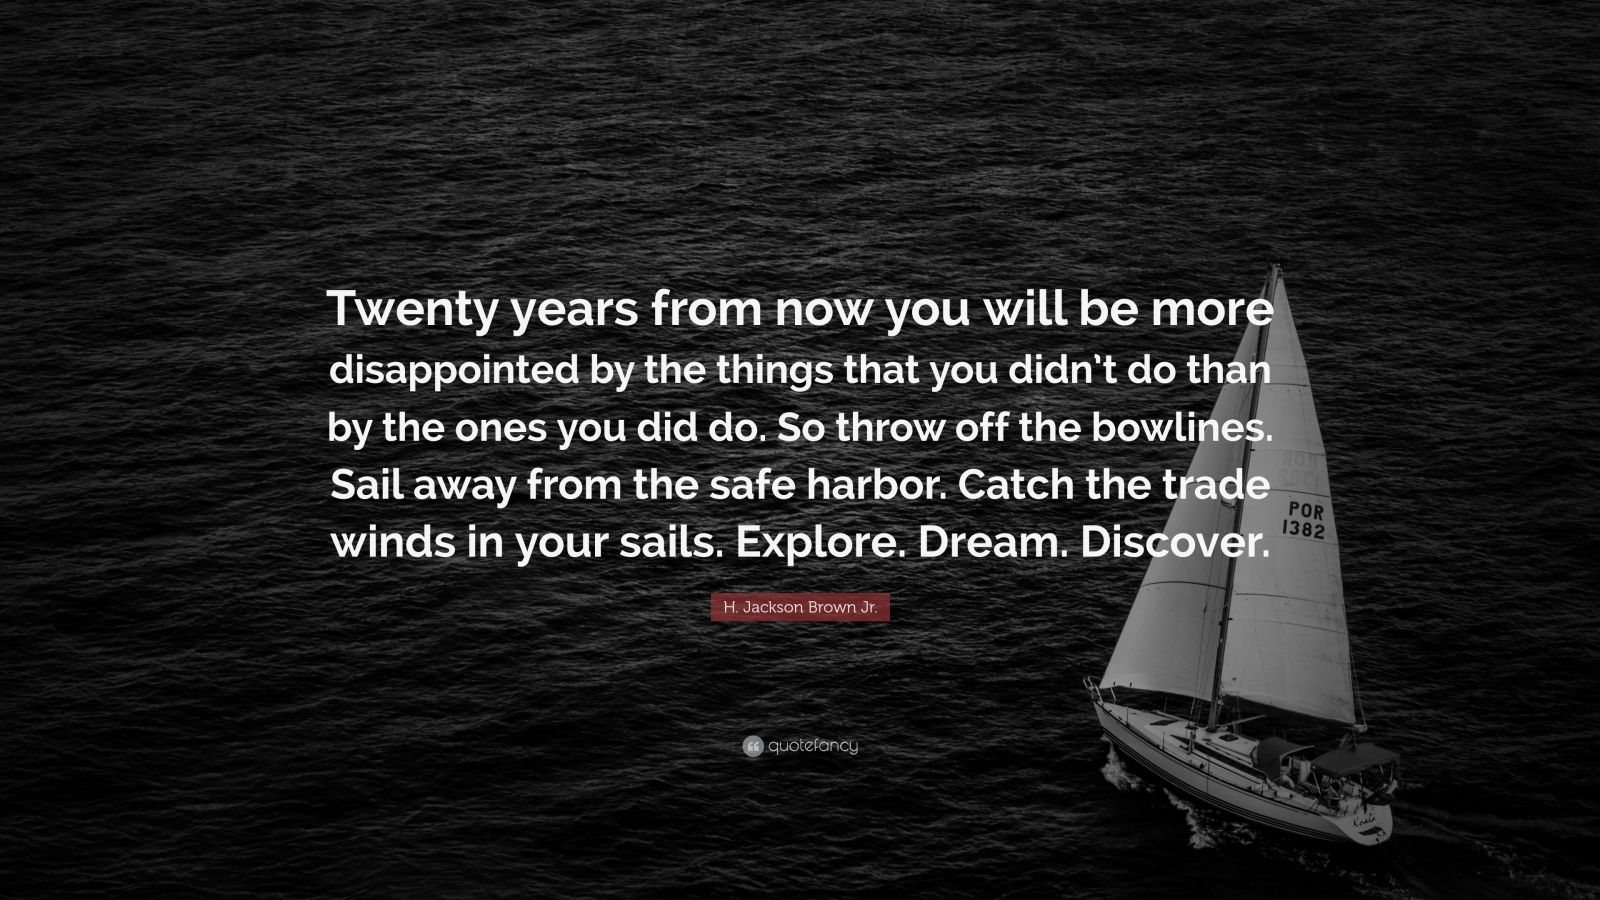 """H. Jackson Brown Jr. Quote: """"Twenty years from now you will be more disappointed by the things that you didn't do than by the ones you did do. So throw off the bowlines. Sail away from the safe harbor. Catch the trade winds in your sails. Explore. Dream. Discover."""""""